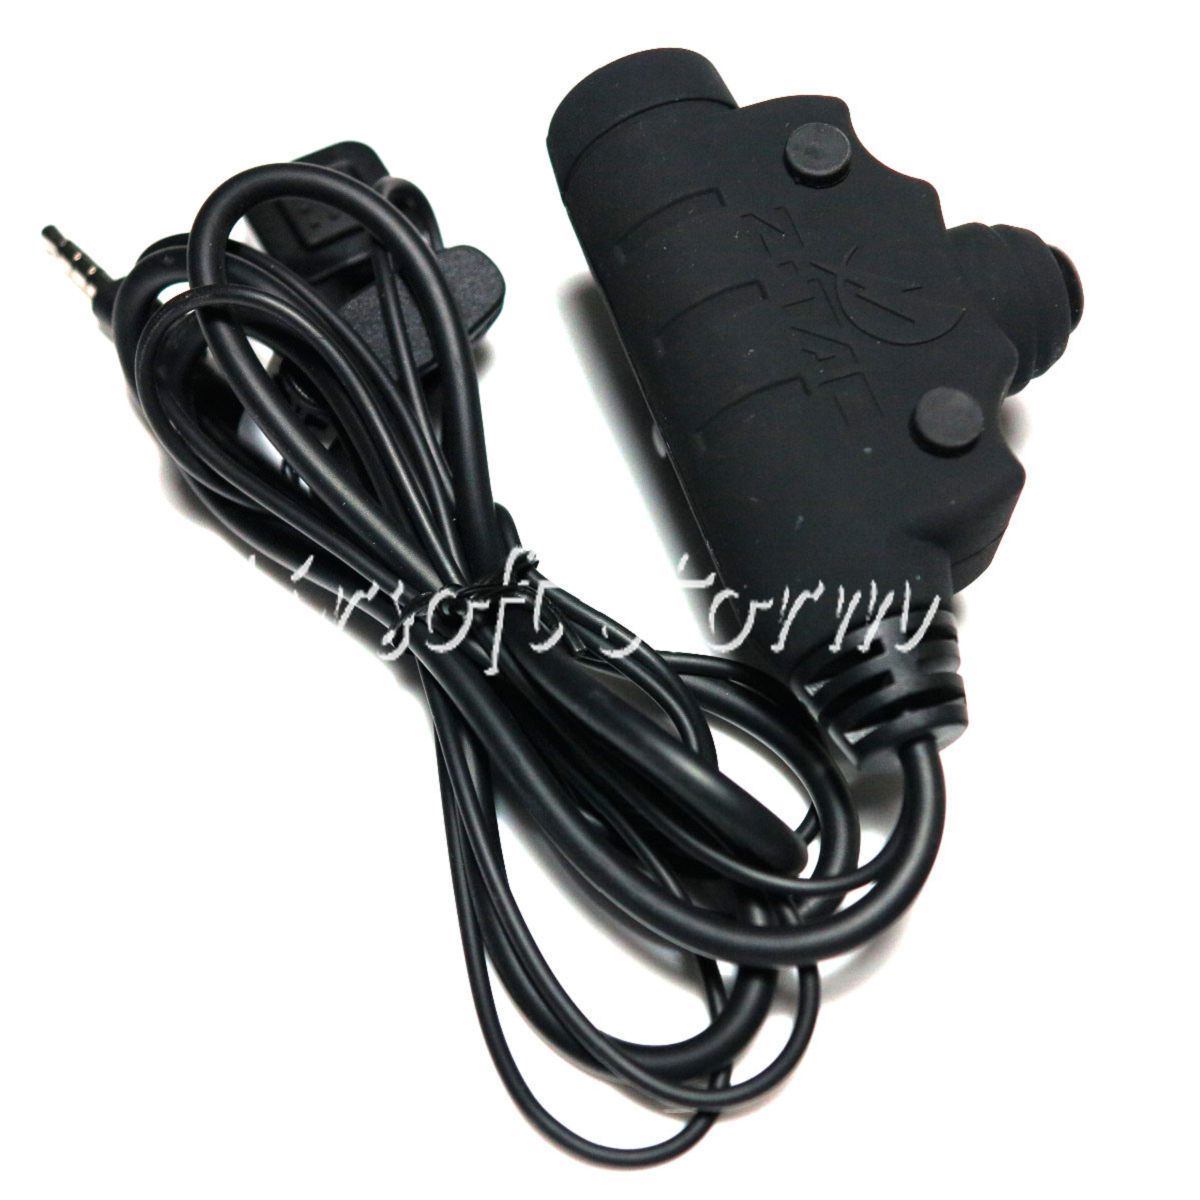 Airsoft SWAT Communications Gear Z Tactical U94 New Headset Cable & PTT for Mobile Phone 3.5mm